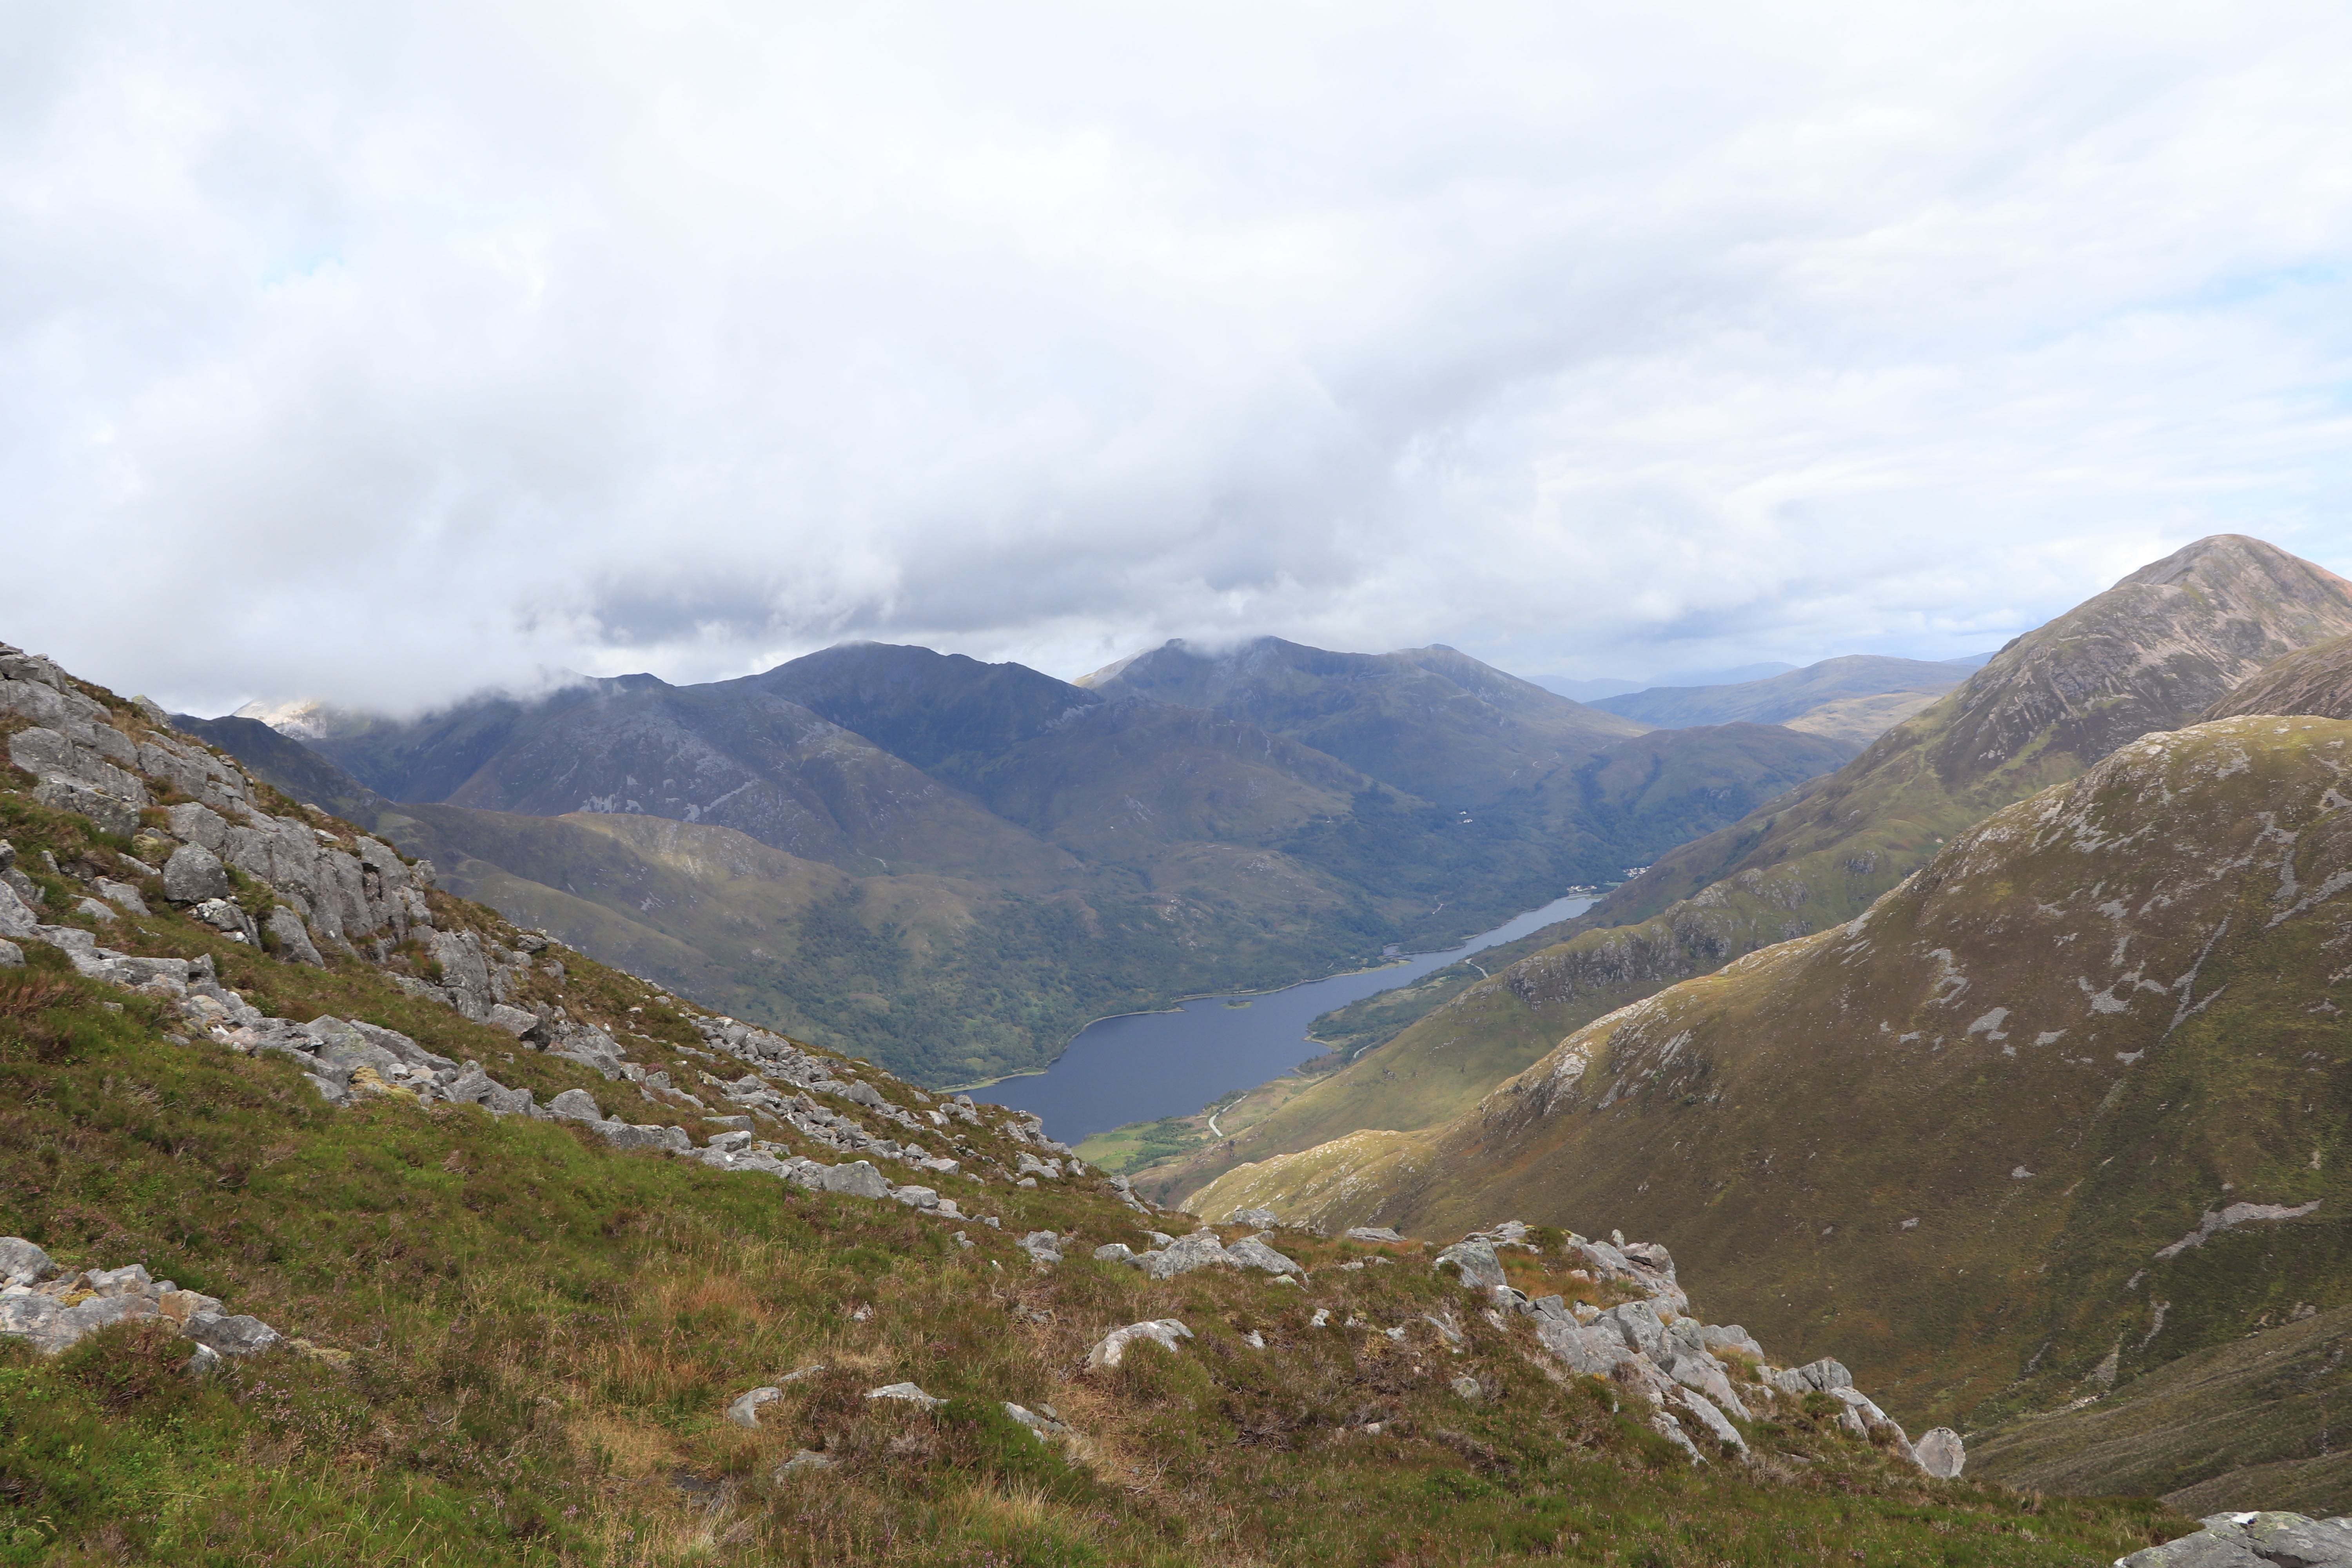 View of Loch Leven from Pap of Glencoe ECF